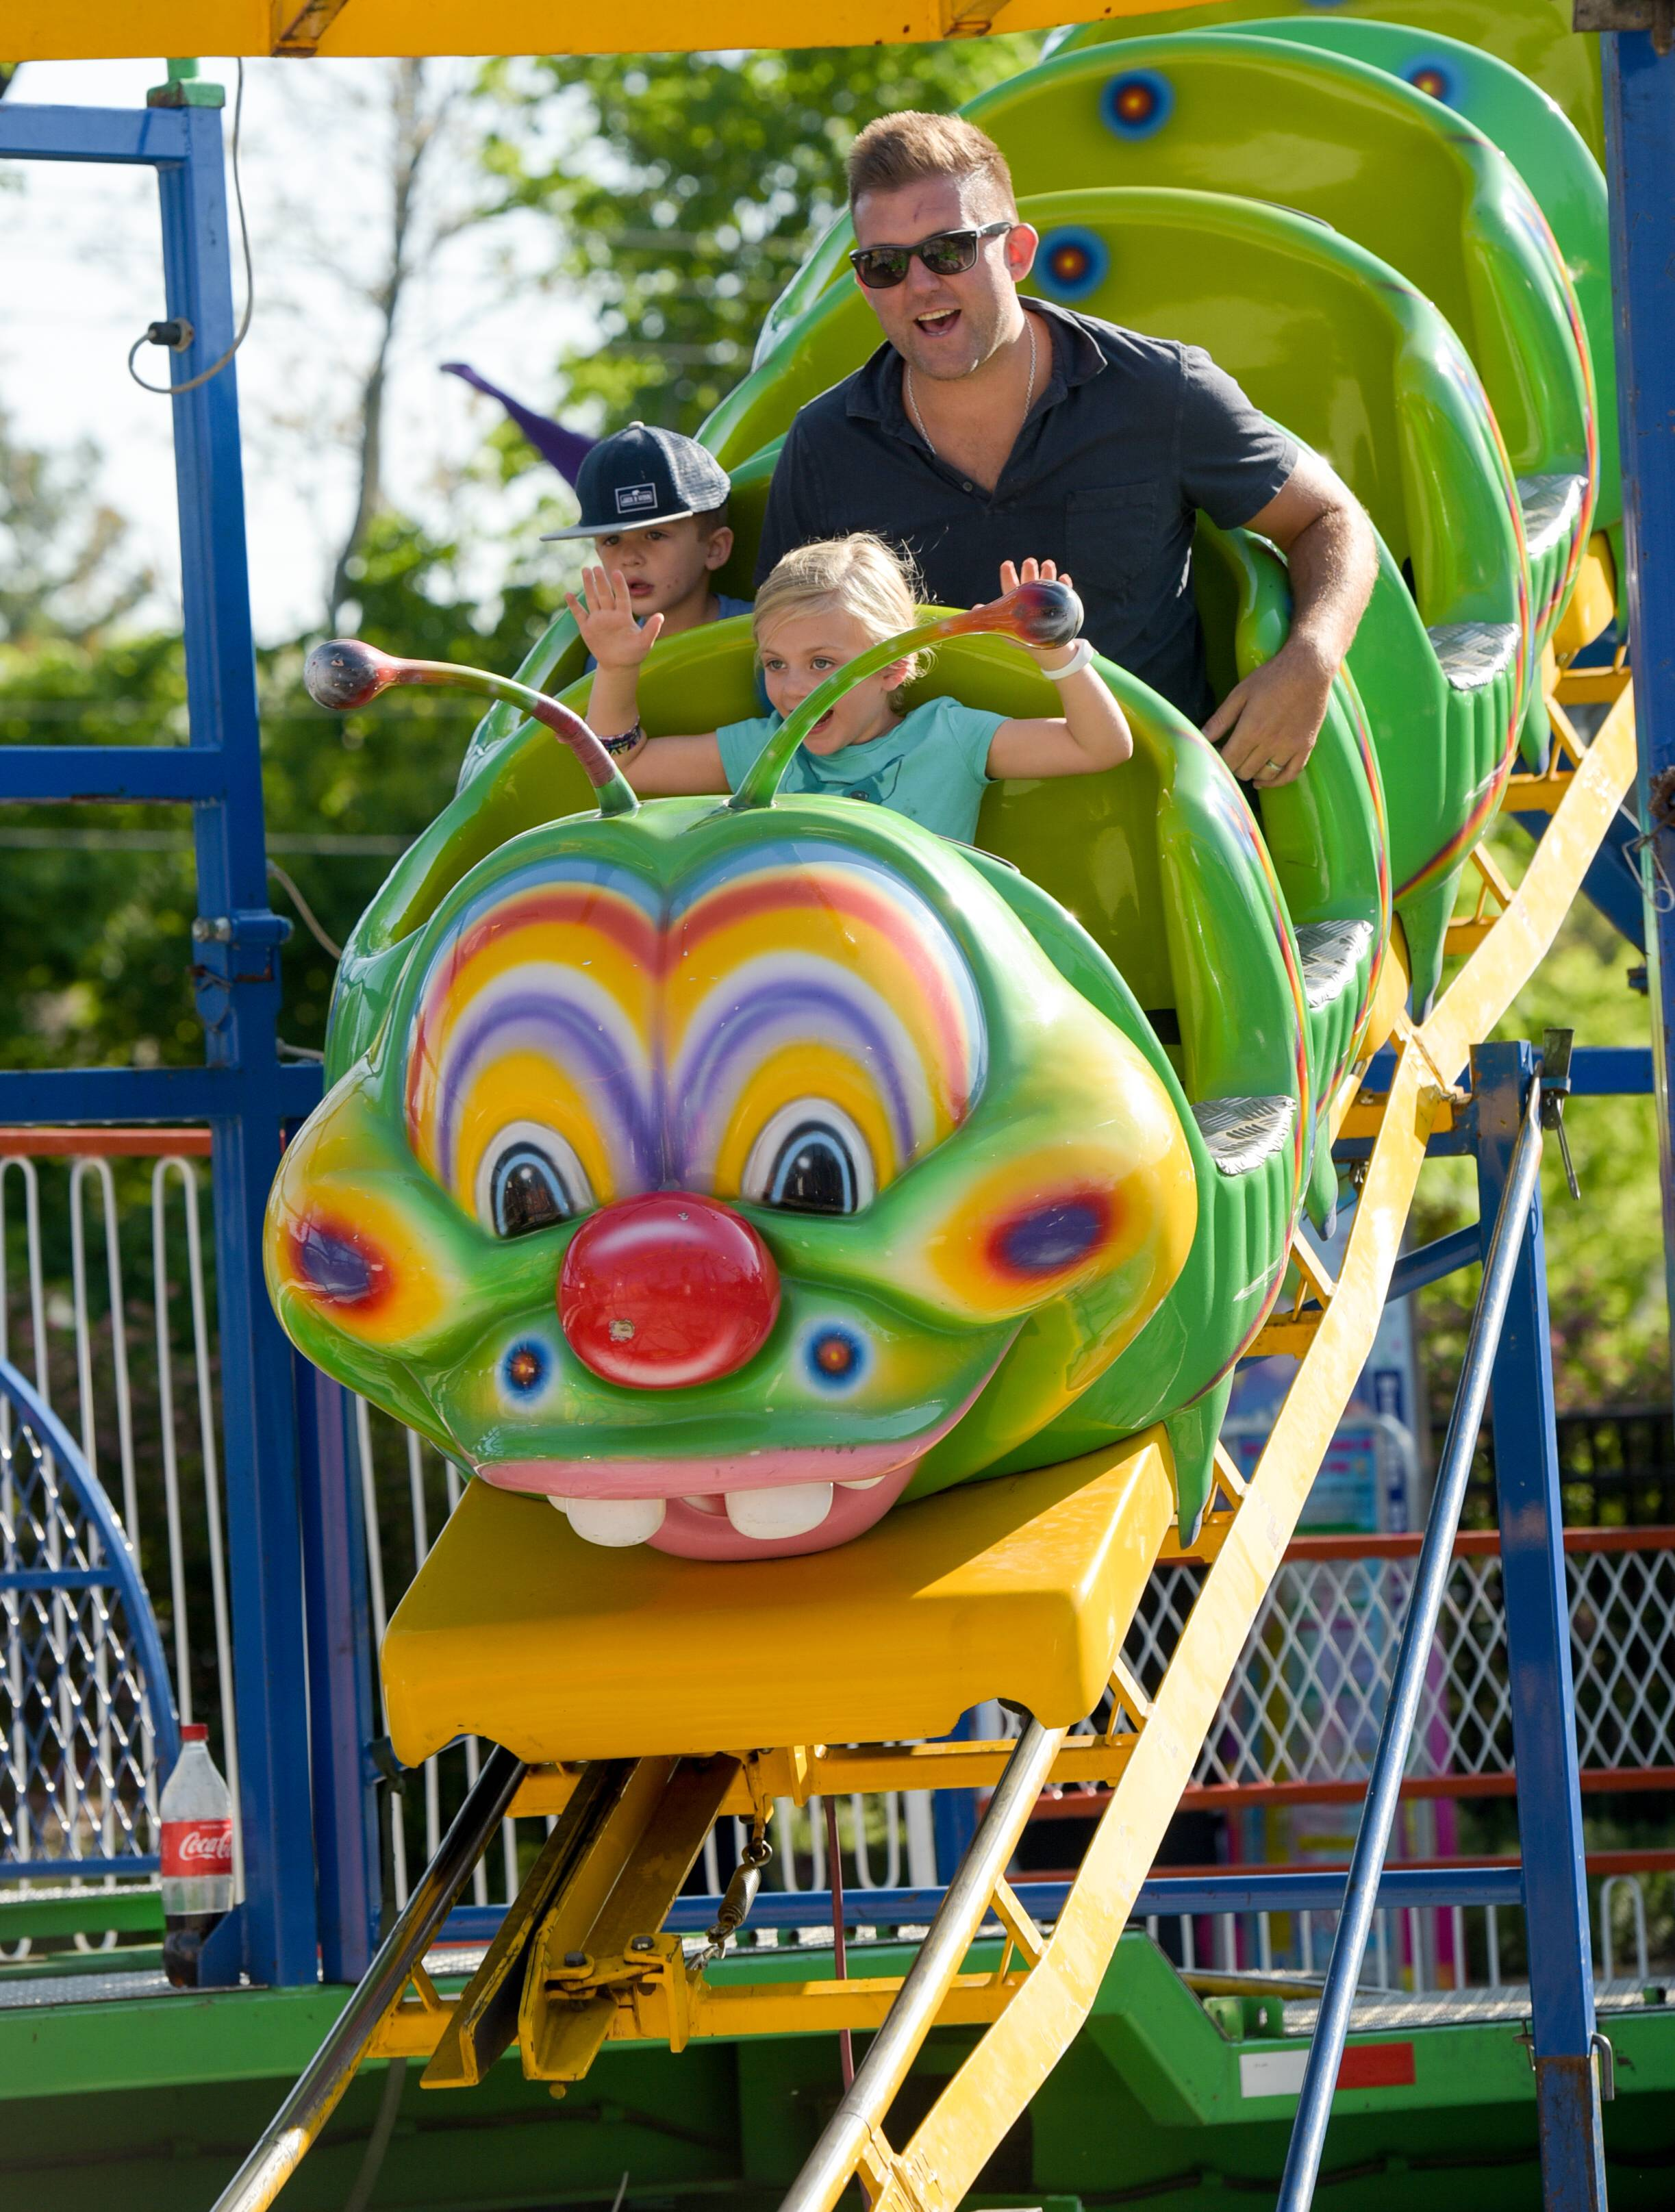 Glen Ellyn dad Tom Kolesti takes a ride on a caterpillar roller coaster Wednesday with his kids Tommy, 3, and Keira, 6, on the opening day of a carnival that runs in conjunction with the Taste of Glen Ellyn, a long-running festival returning Thursday.